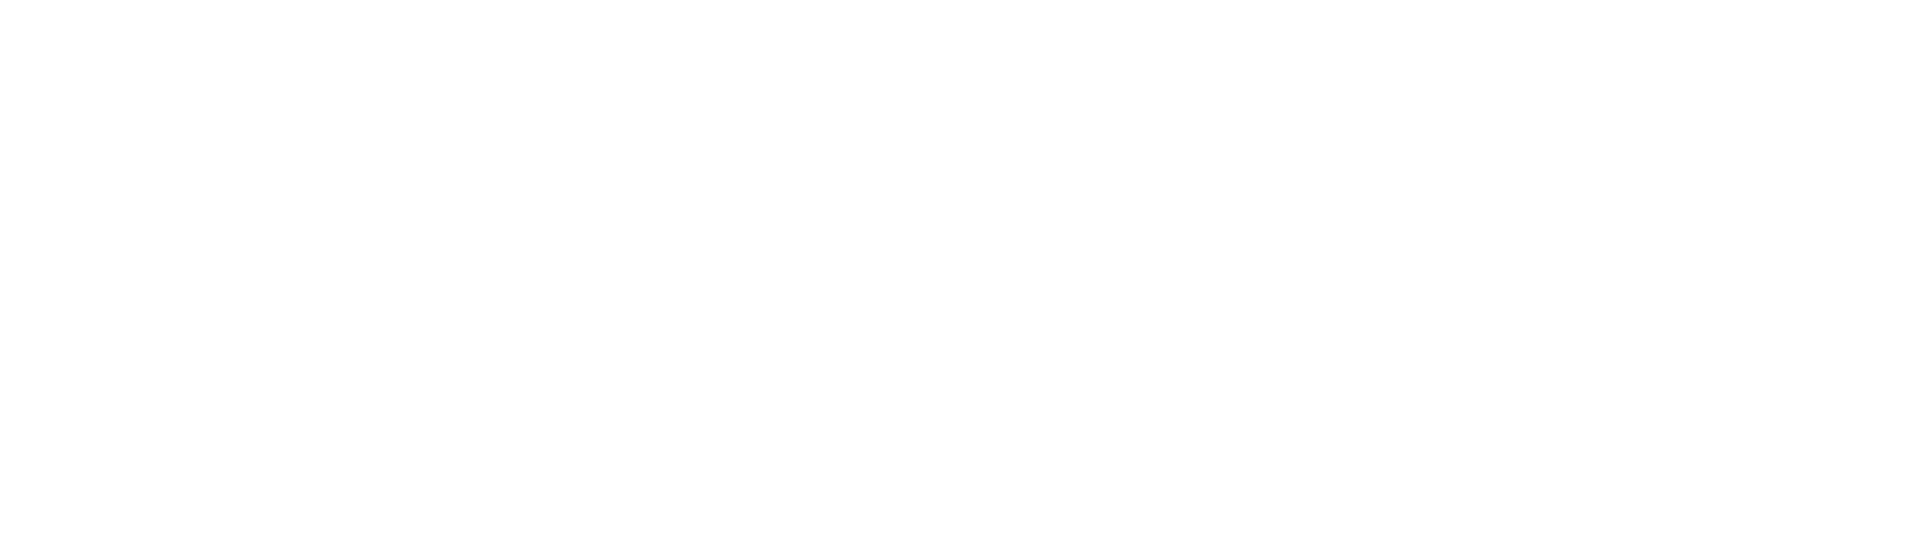 The Middlesex County Logo